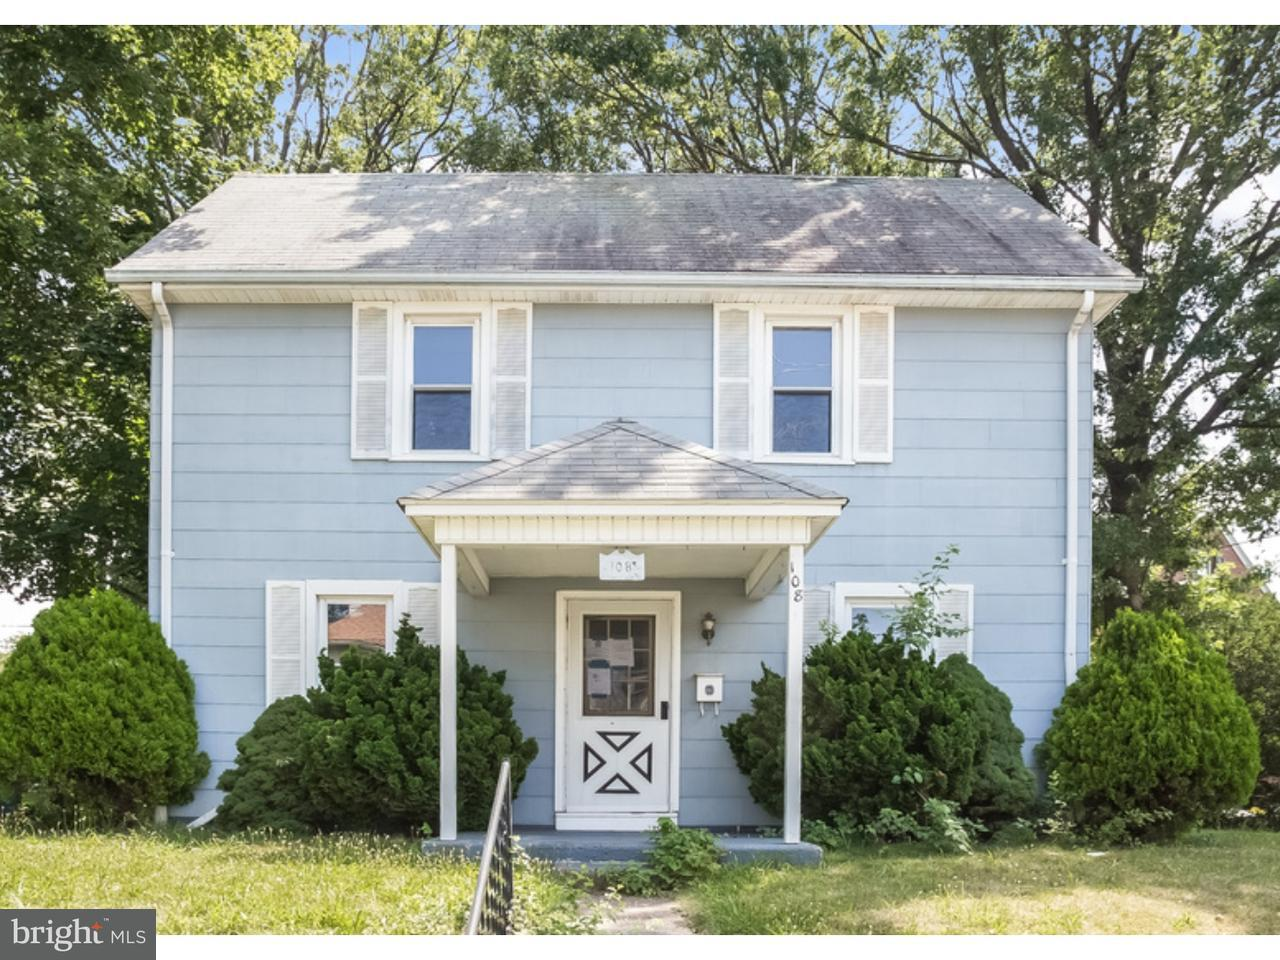 Single Family Home for Sale at 108 N WILSON Avenue Brooklawn, New Jersey 08030 United States